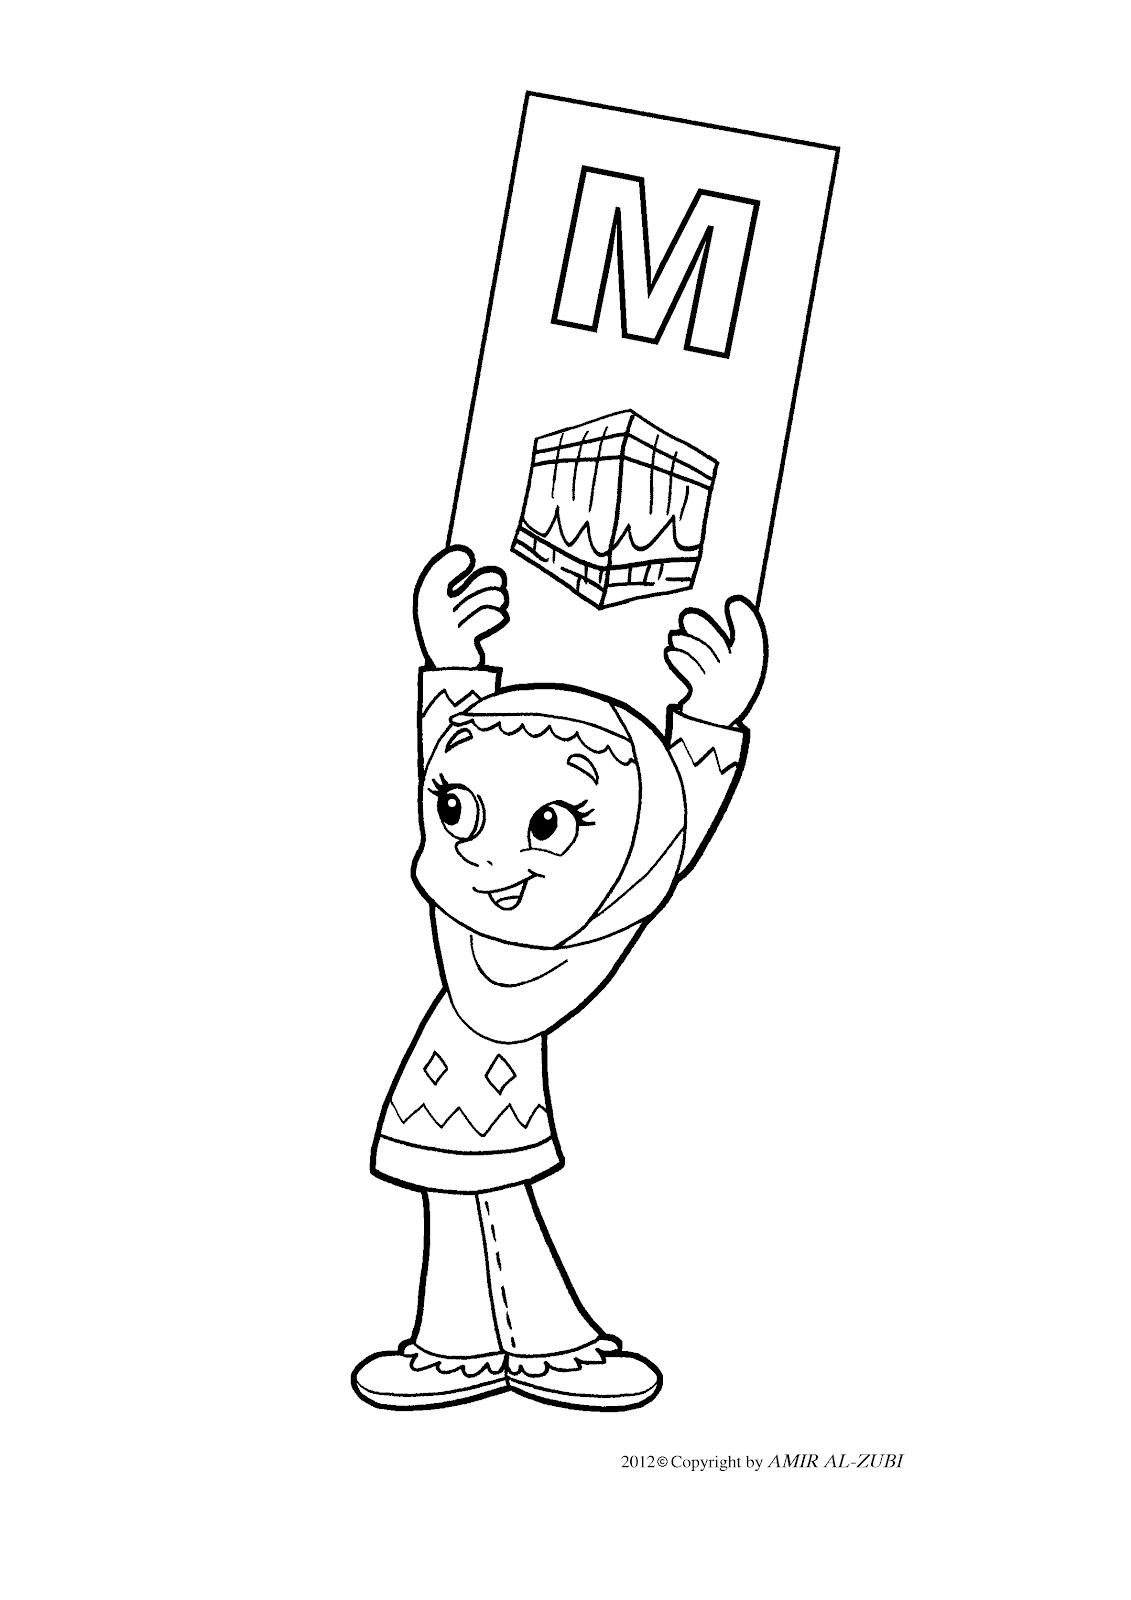 ana muslim coloring pages - photo#35